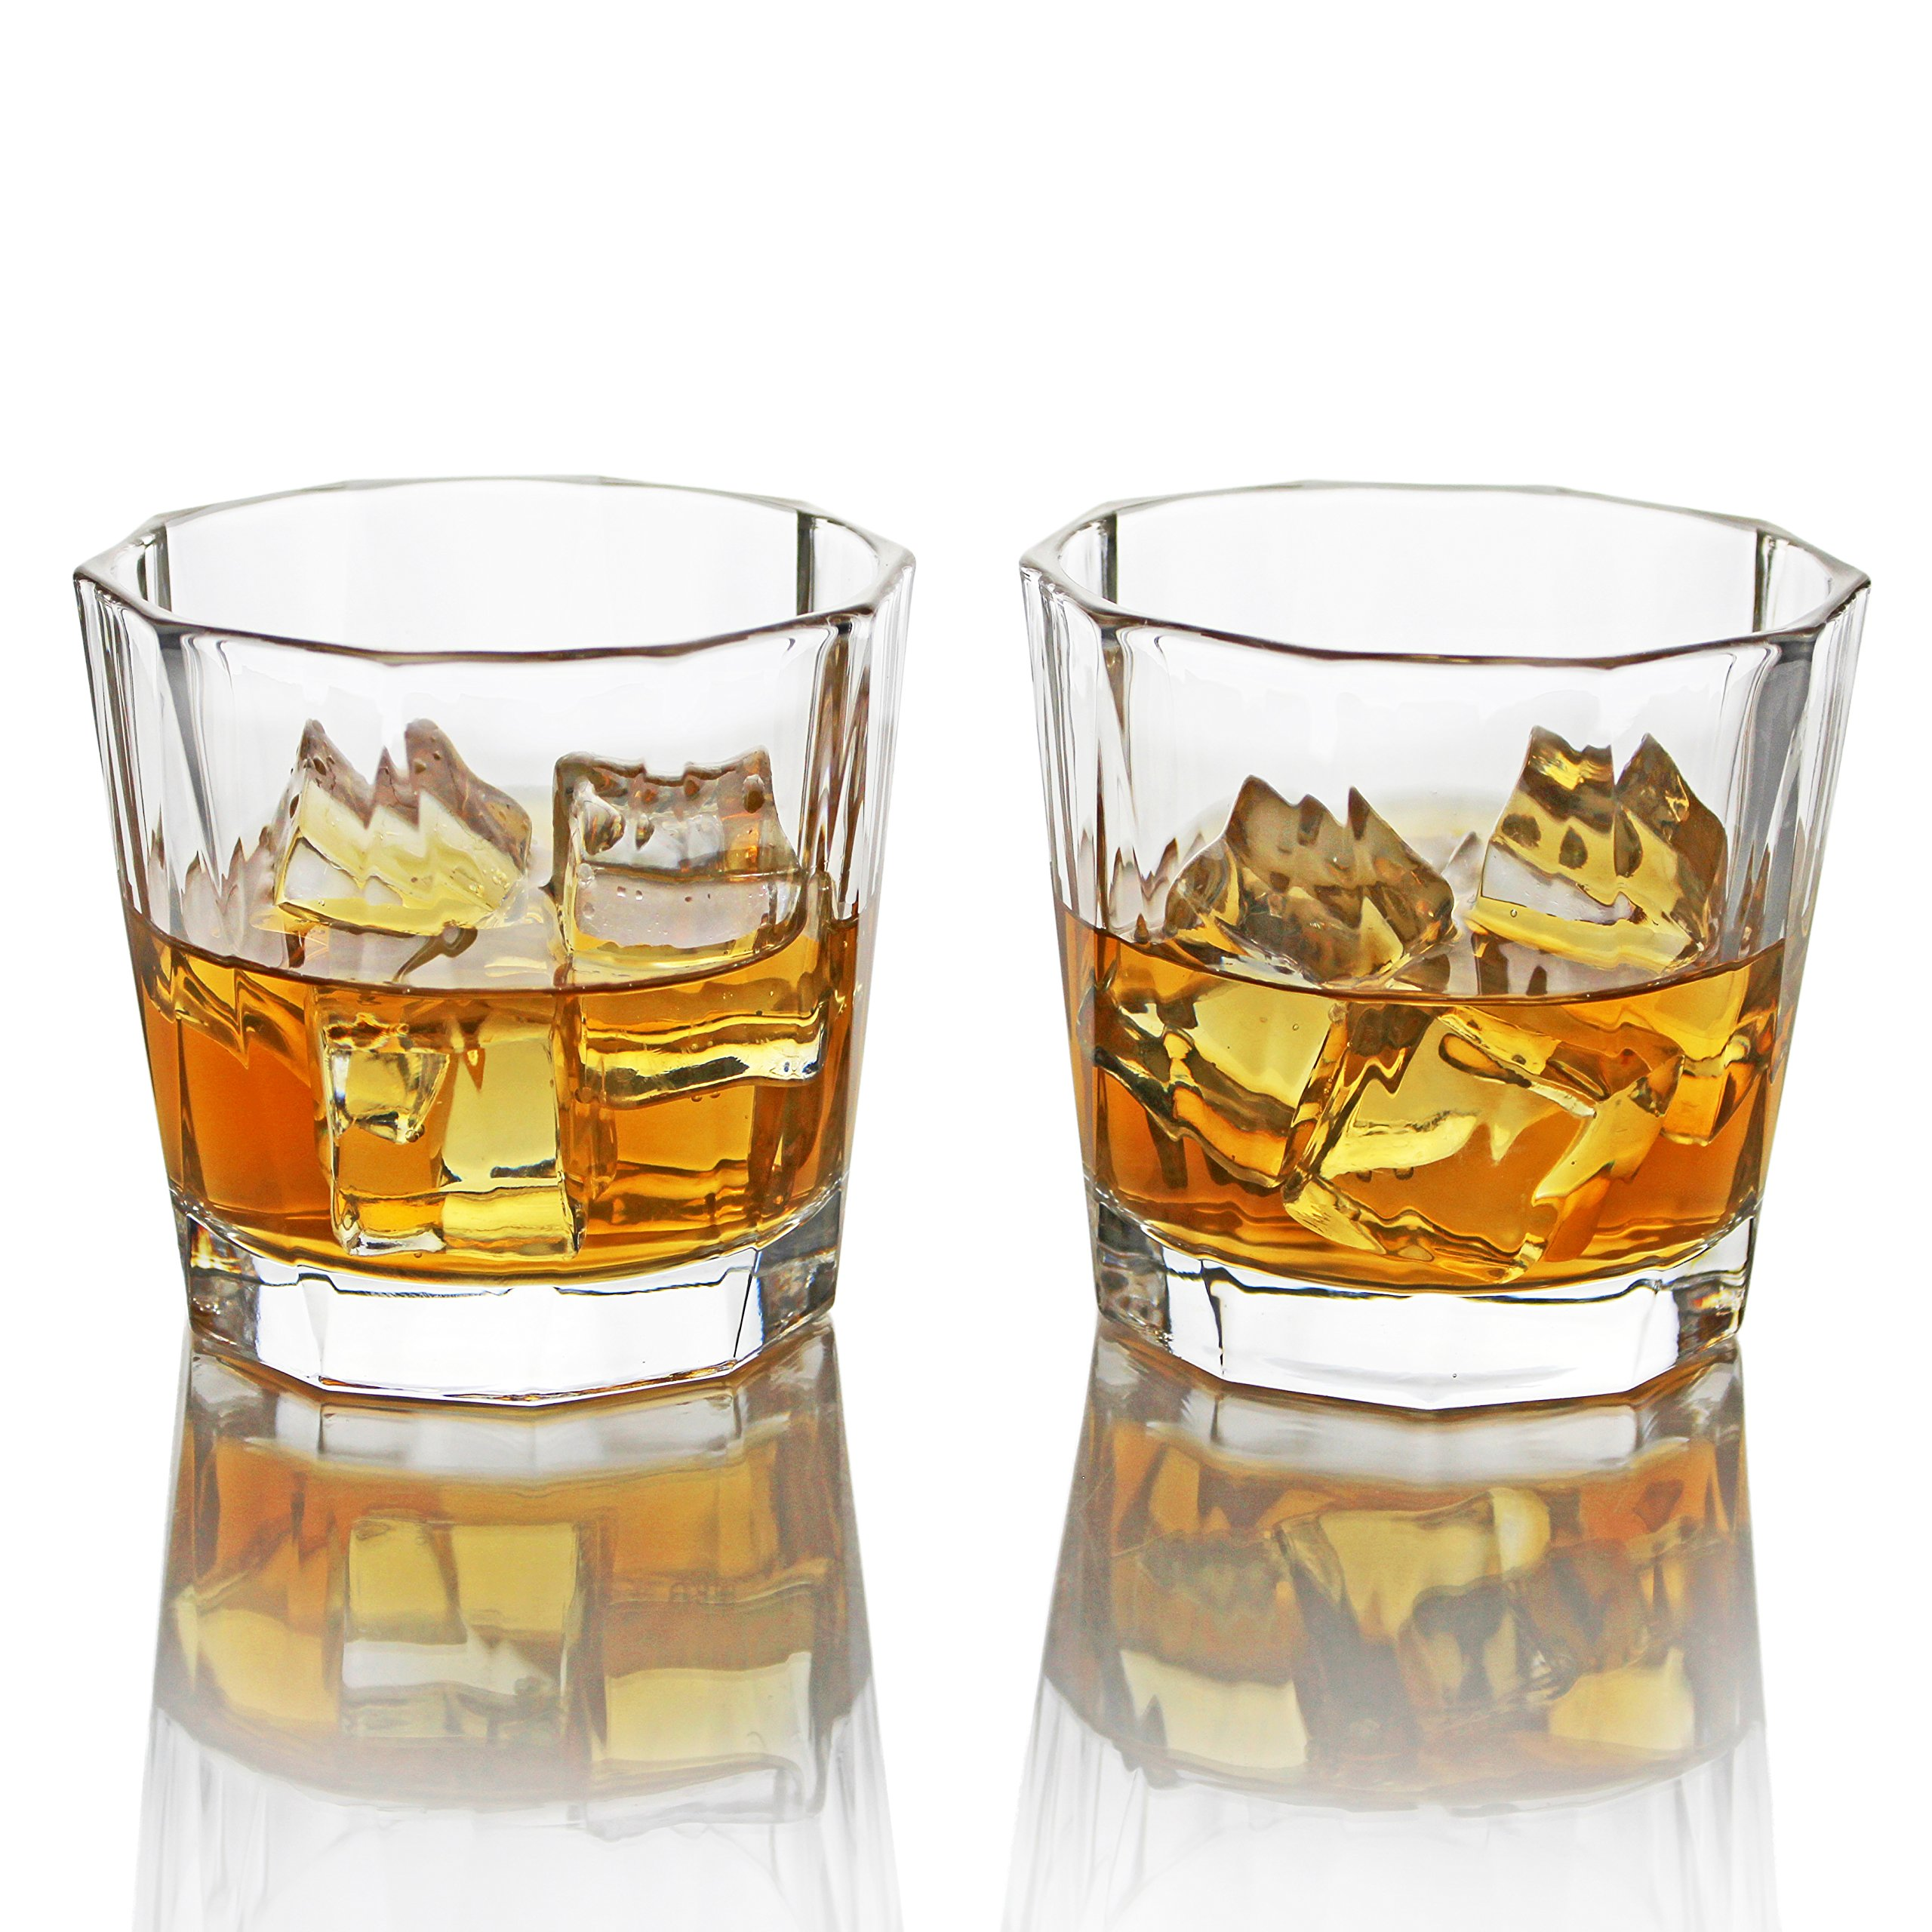 Summit One Old Fashioned Whiskey Drinking Glasses 10 Ounce, Set Of 4 Lead-Free Drink Tumblers For Scotch, Bourbon or Cocktails With Heavy Base & Wide Mouth